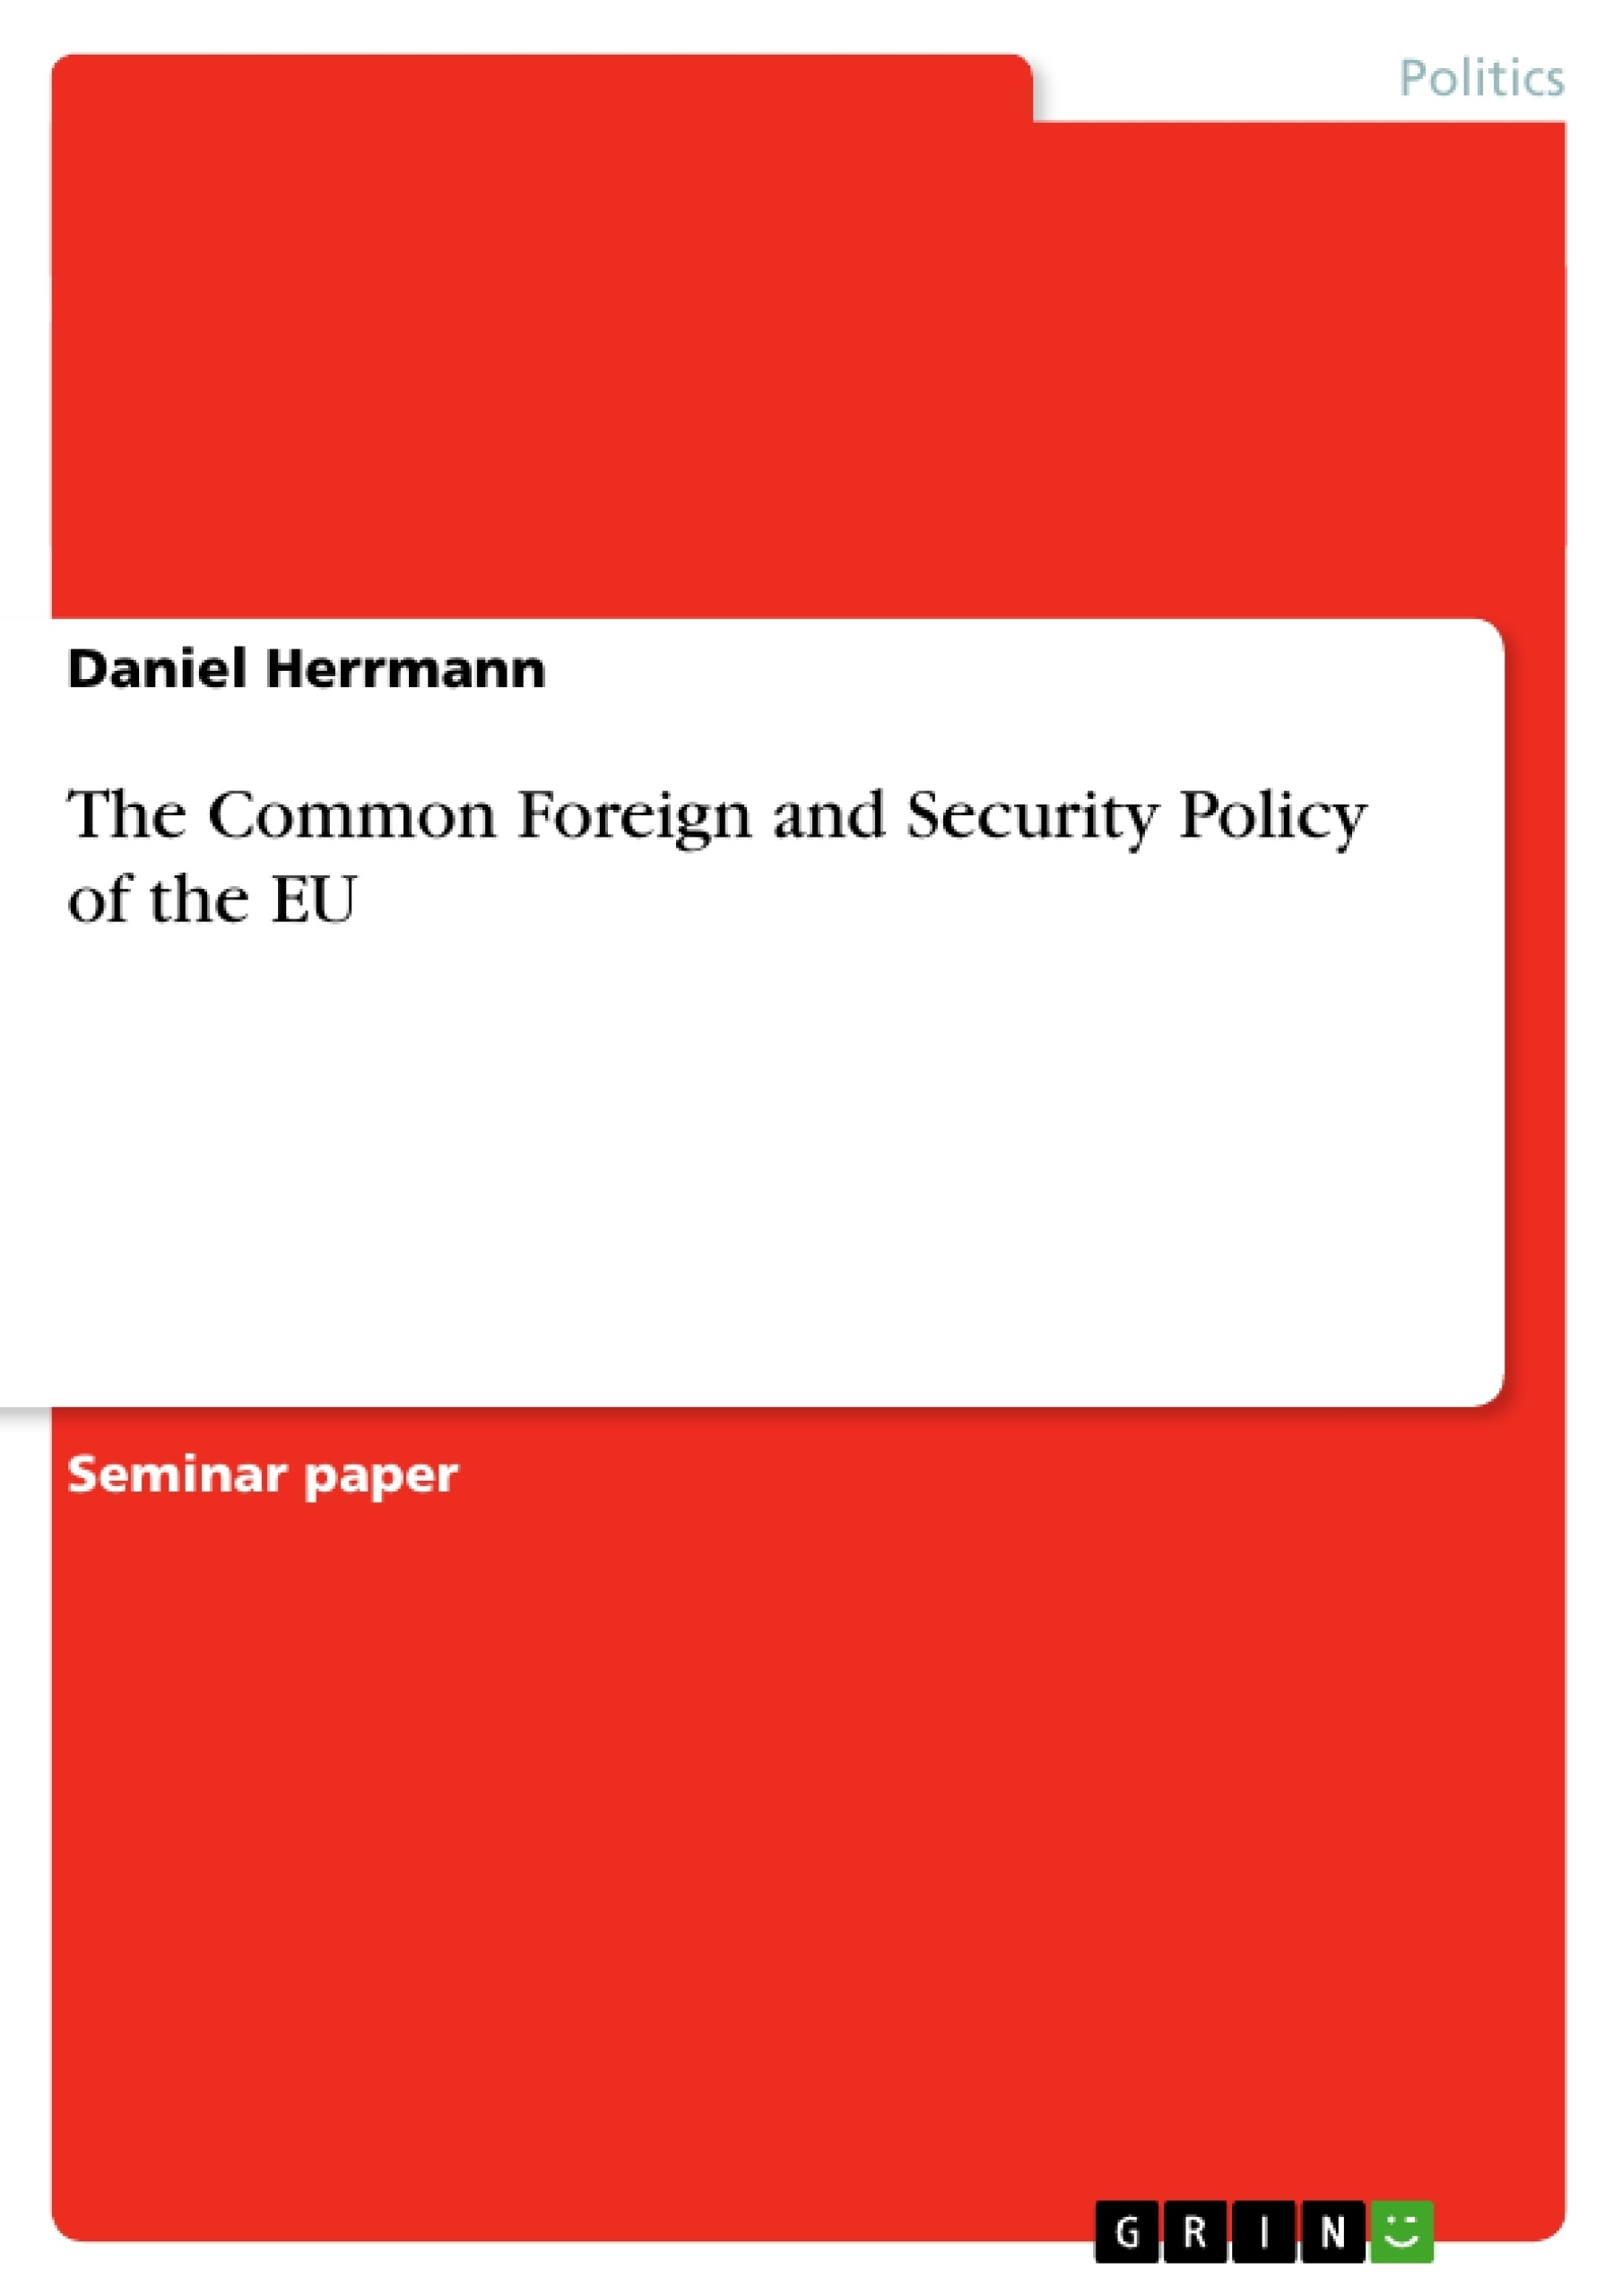 Title: The Common Foreign and Security Policy of the EU